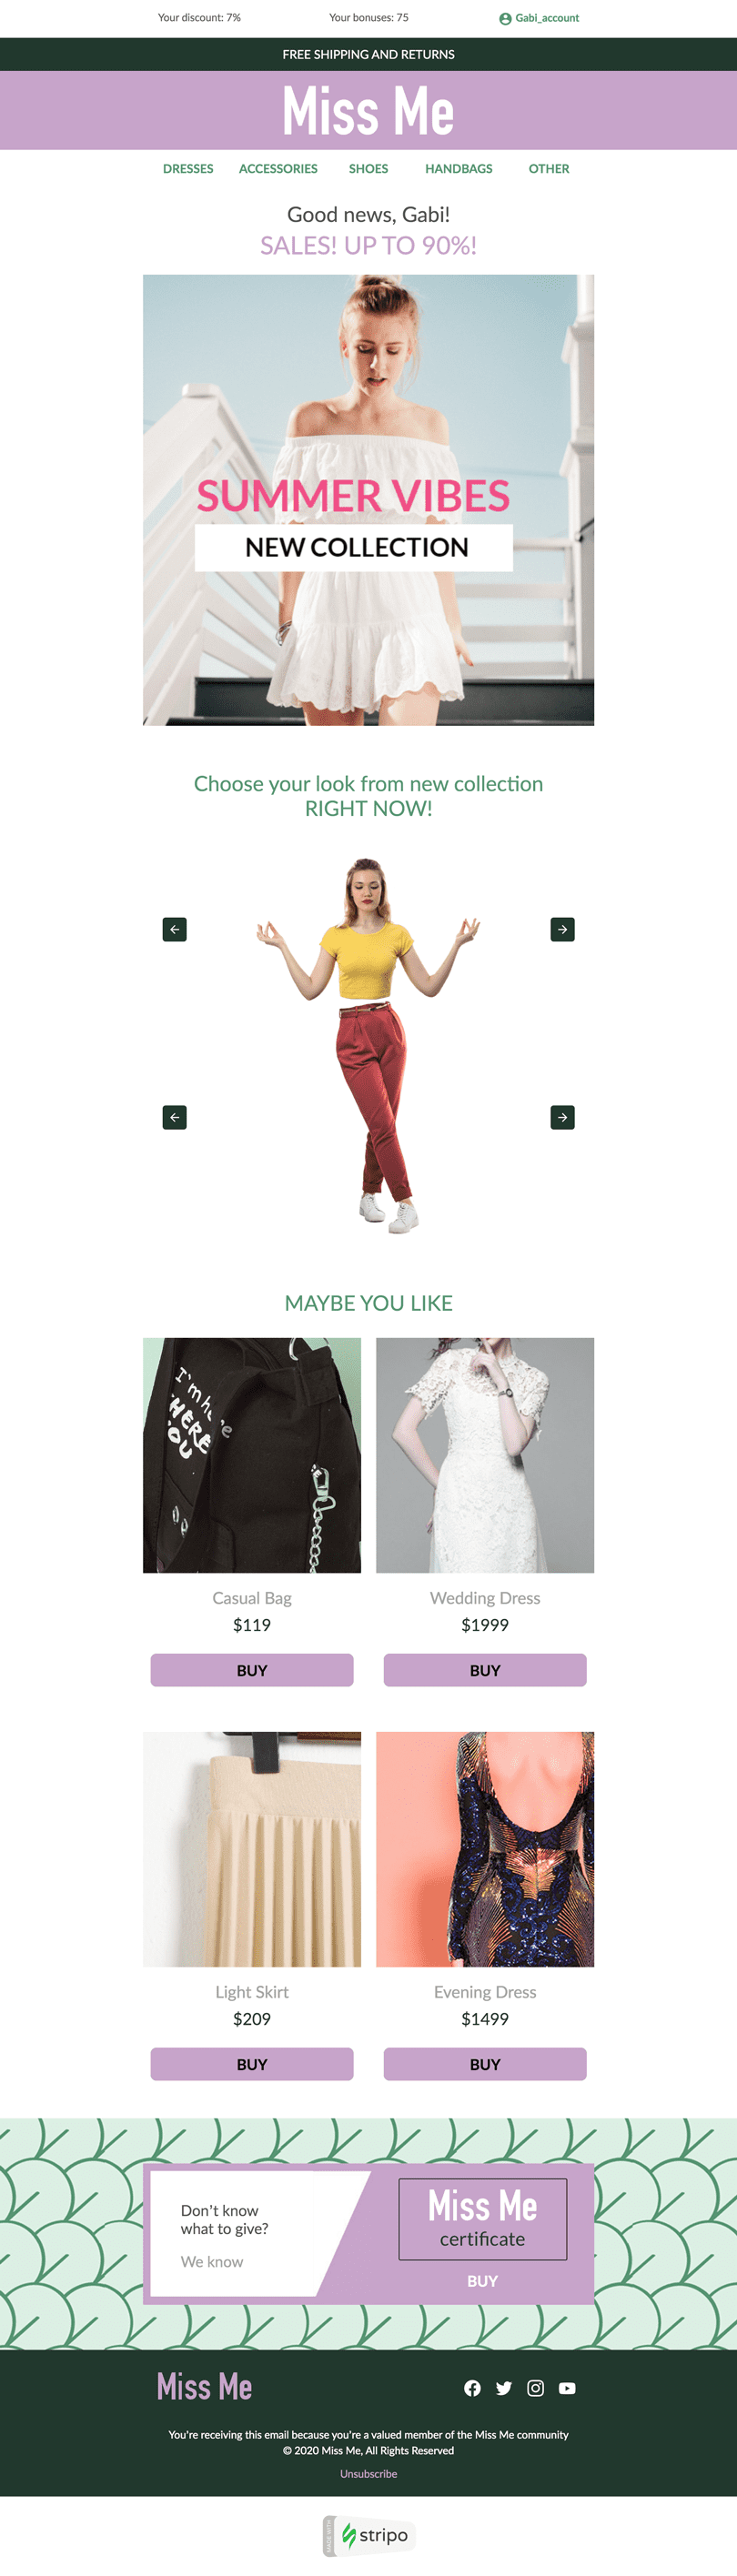 Promo Email Template «Fashionable style» for Fashion industry desktop view